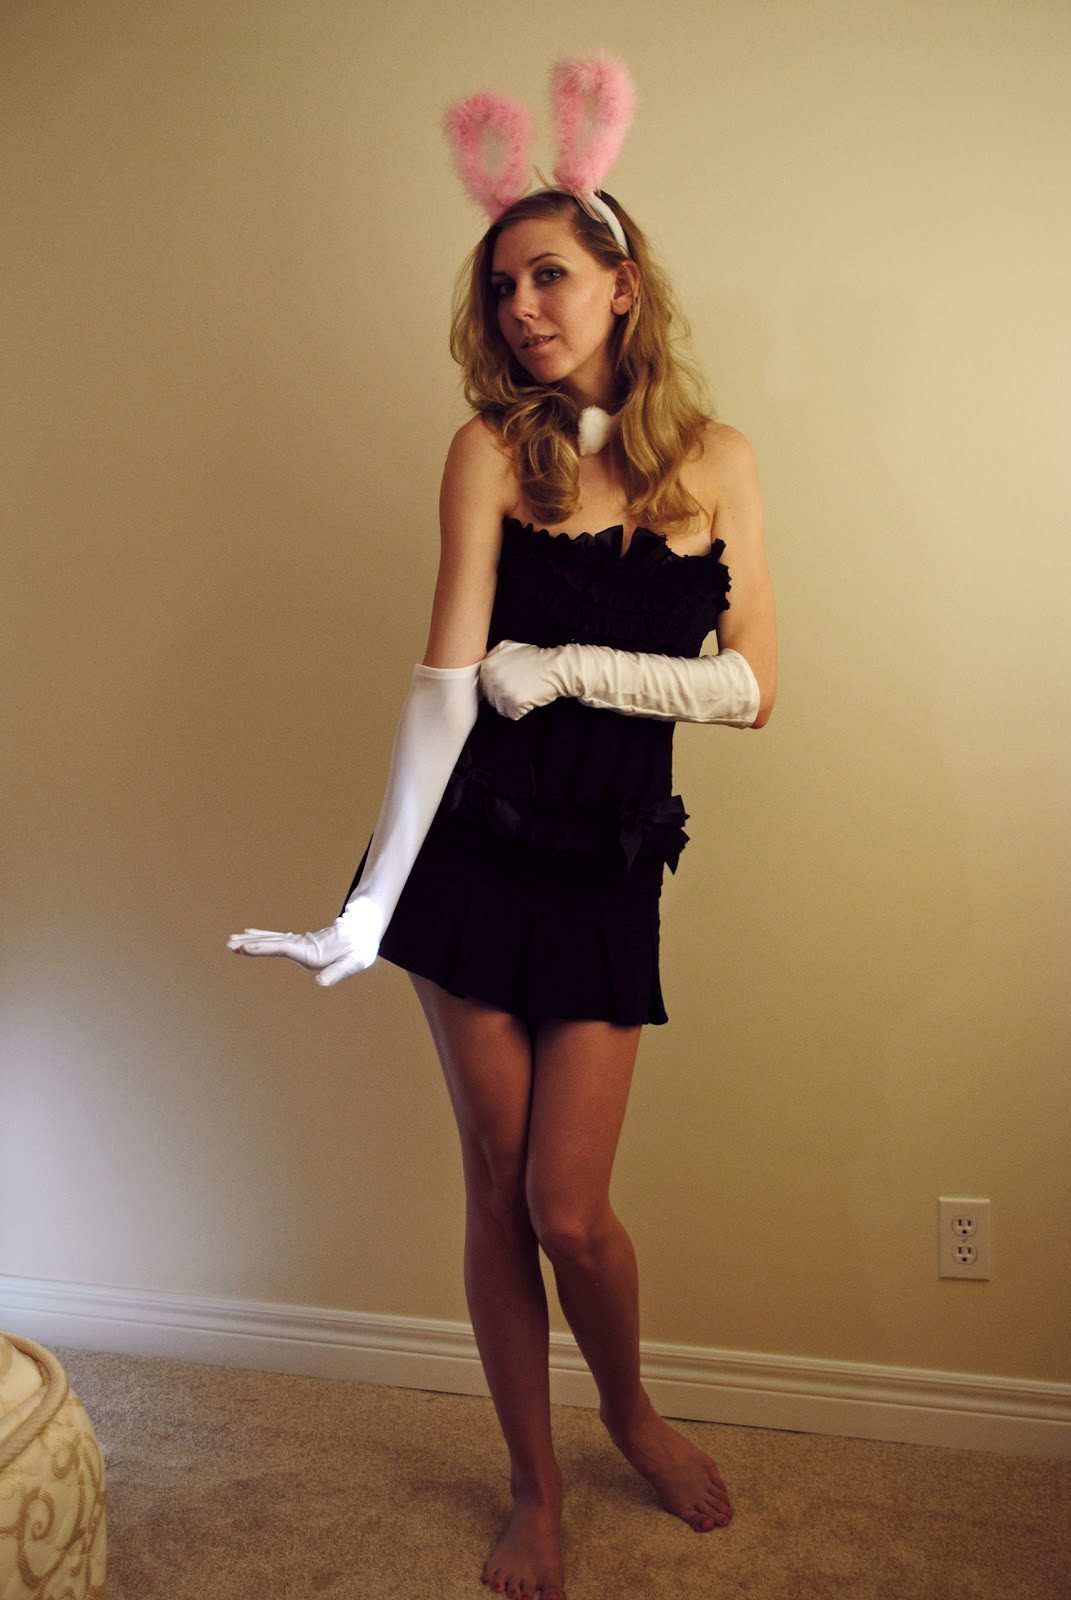 Best ideas about DIY Halloween Costumes Women . Save or Pin Catwalk Candy DIY Halloween Costume Ideas Now.